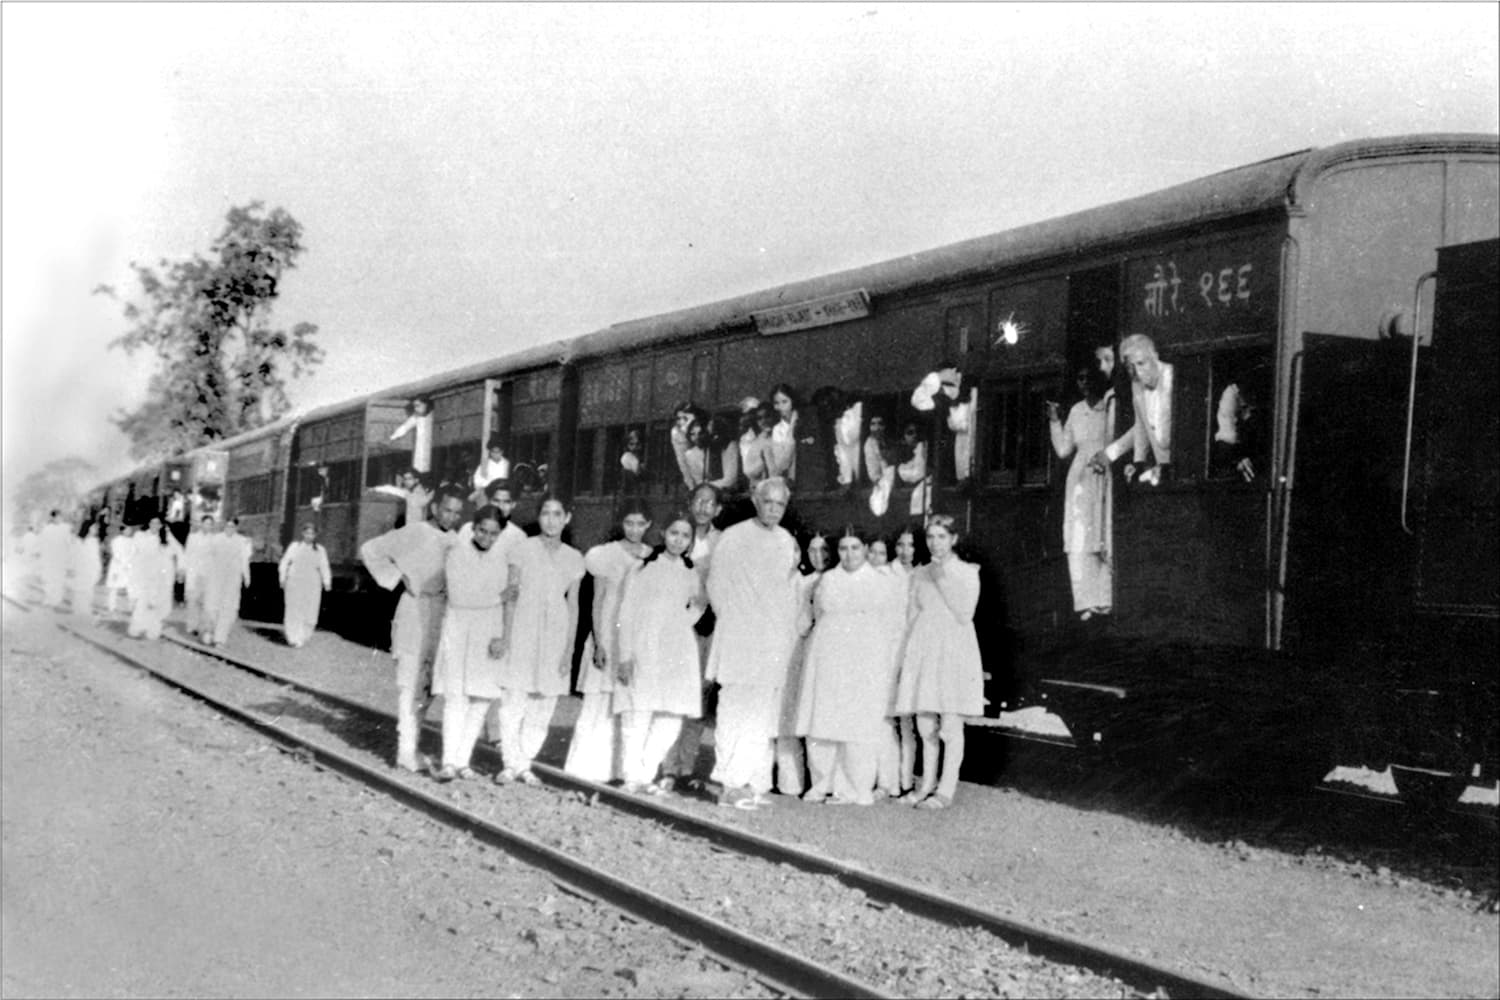 Train to Mount Abu, India in May 1950.